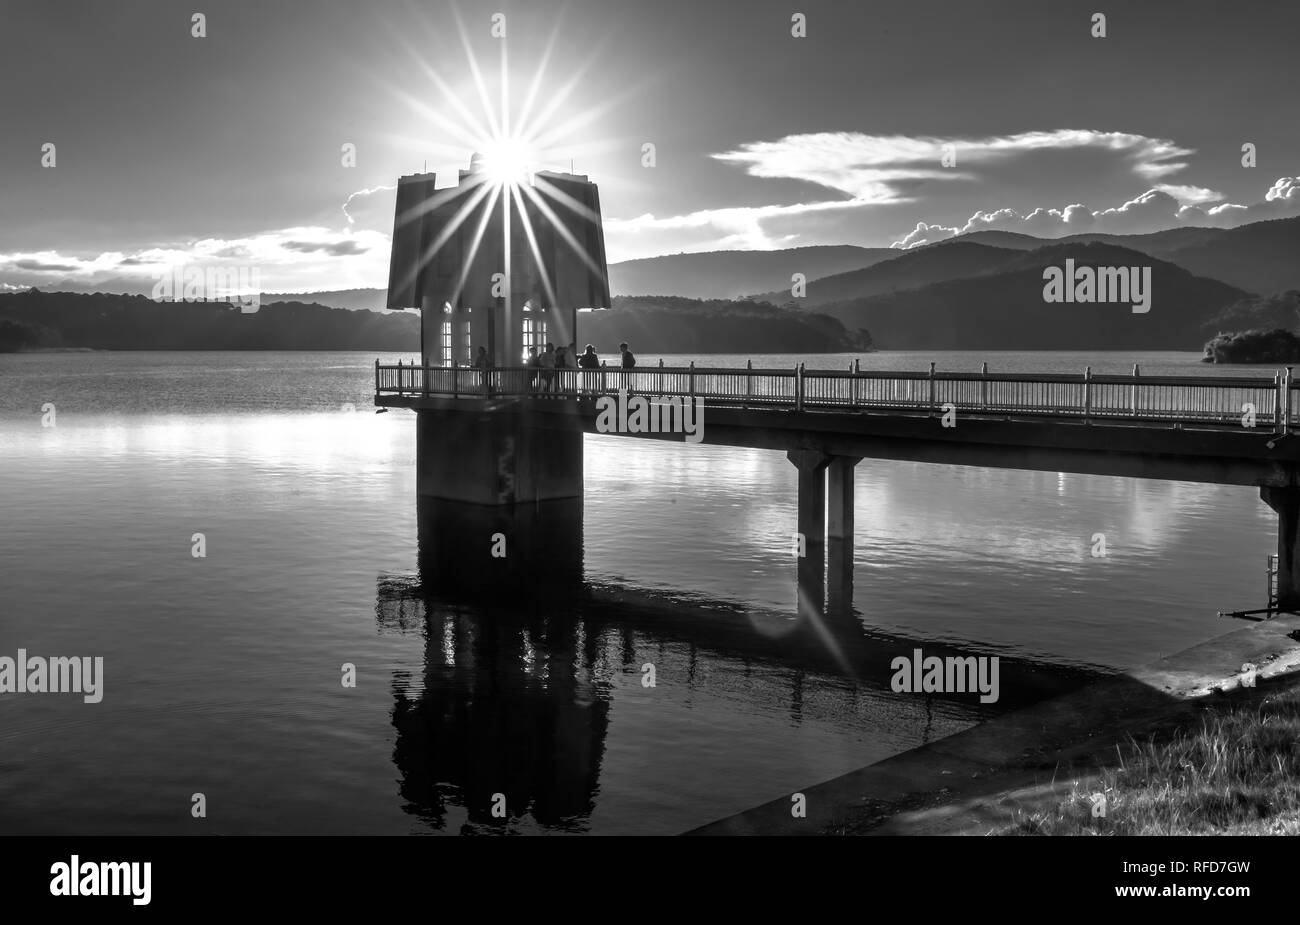 Architectural beauty hydroelectric power with sun stars sunset sky attracting tourists to visit and photograph - Stock Image